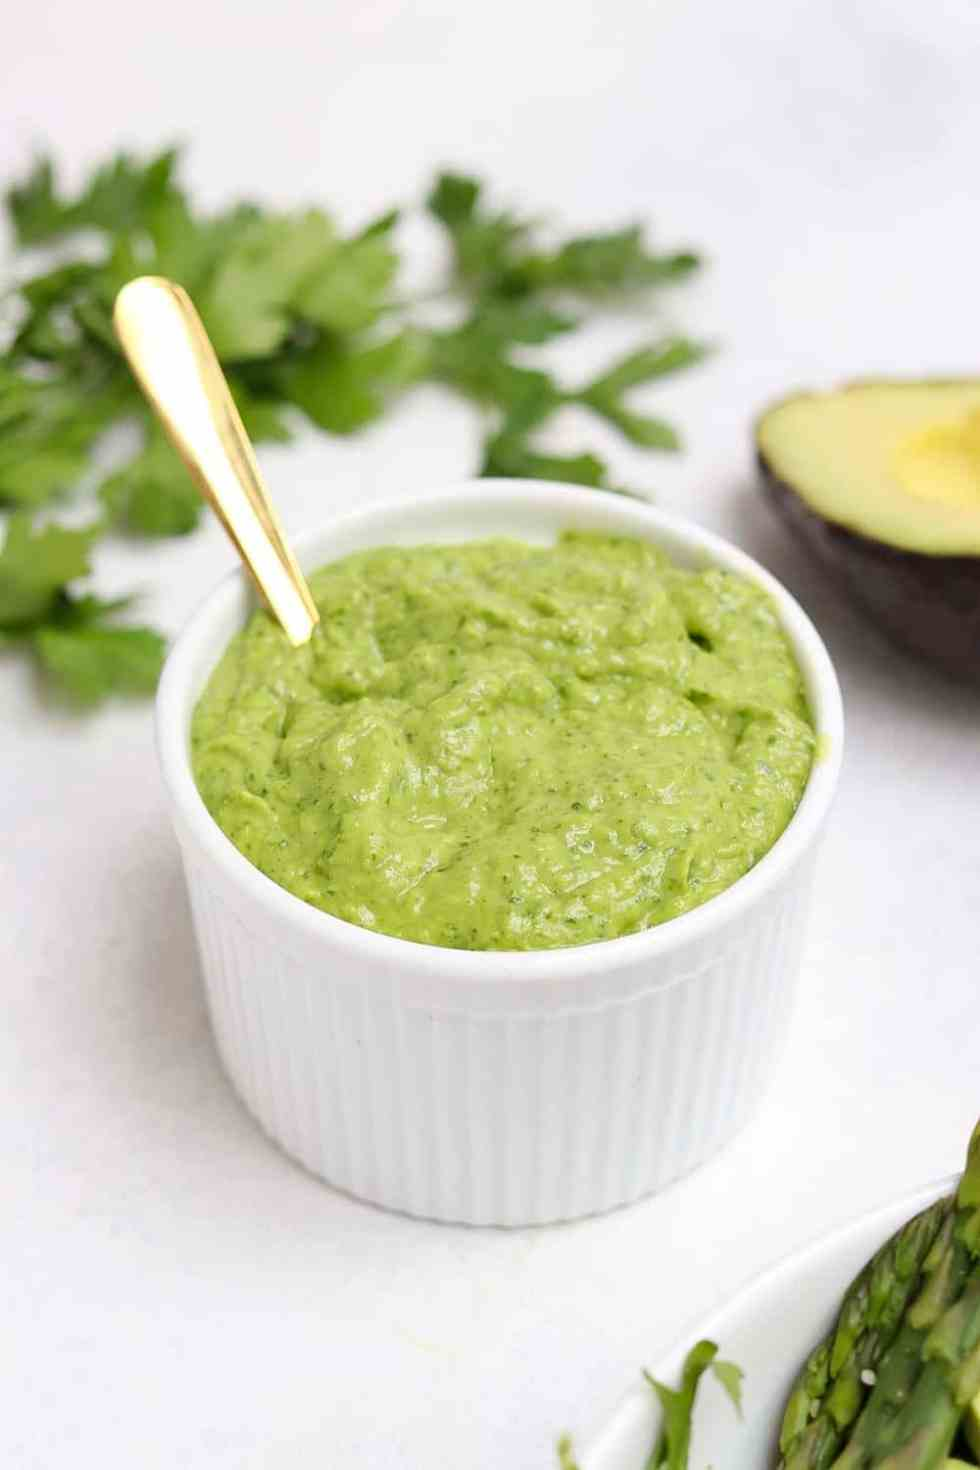 Green goddess dressing in a white bowl with a gold spoon resting inside.